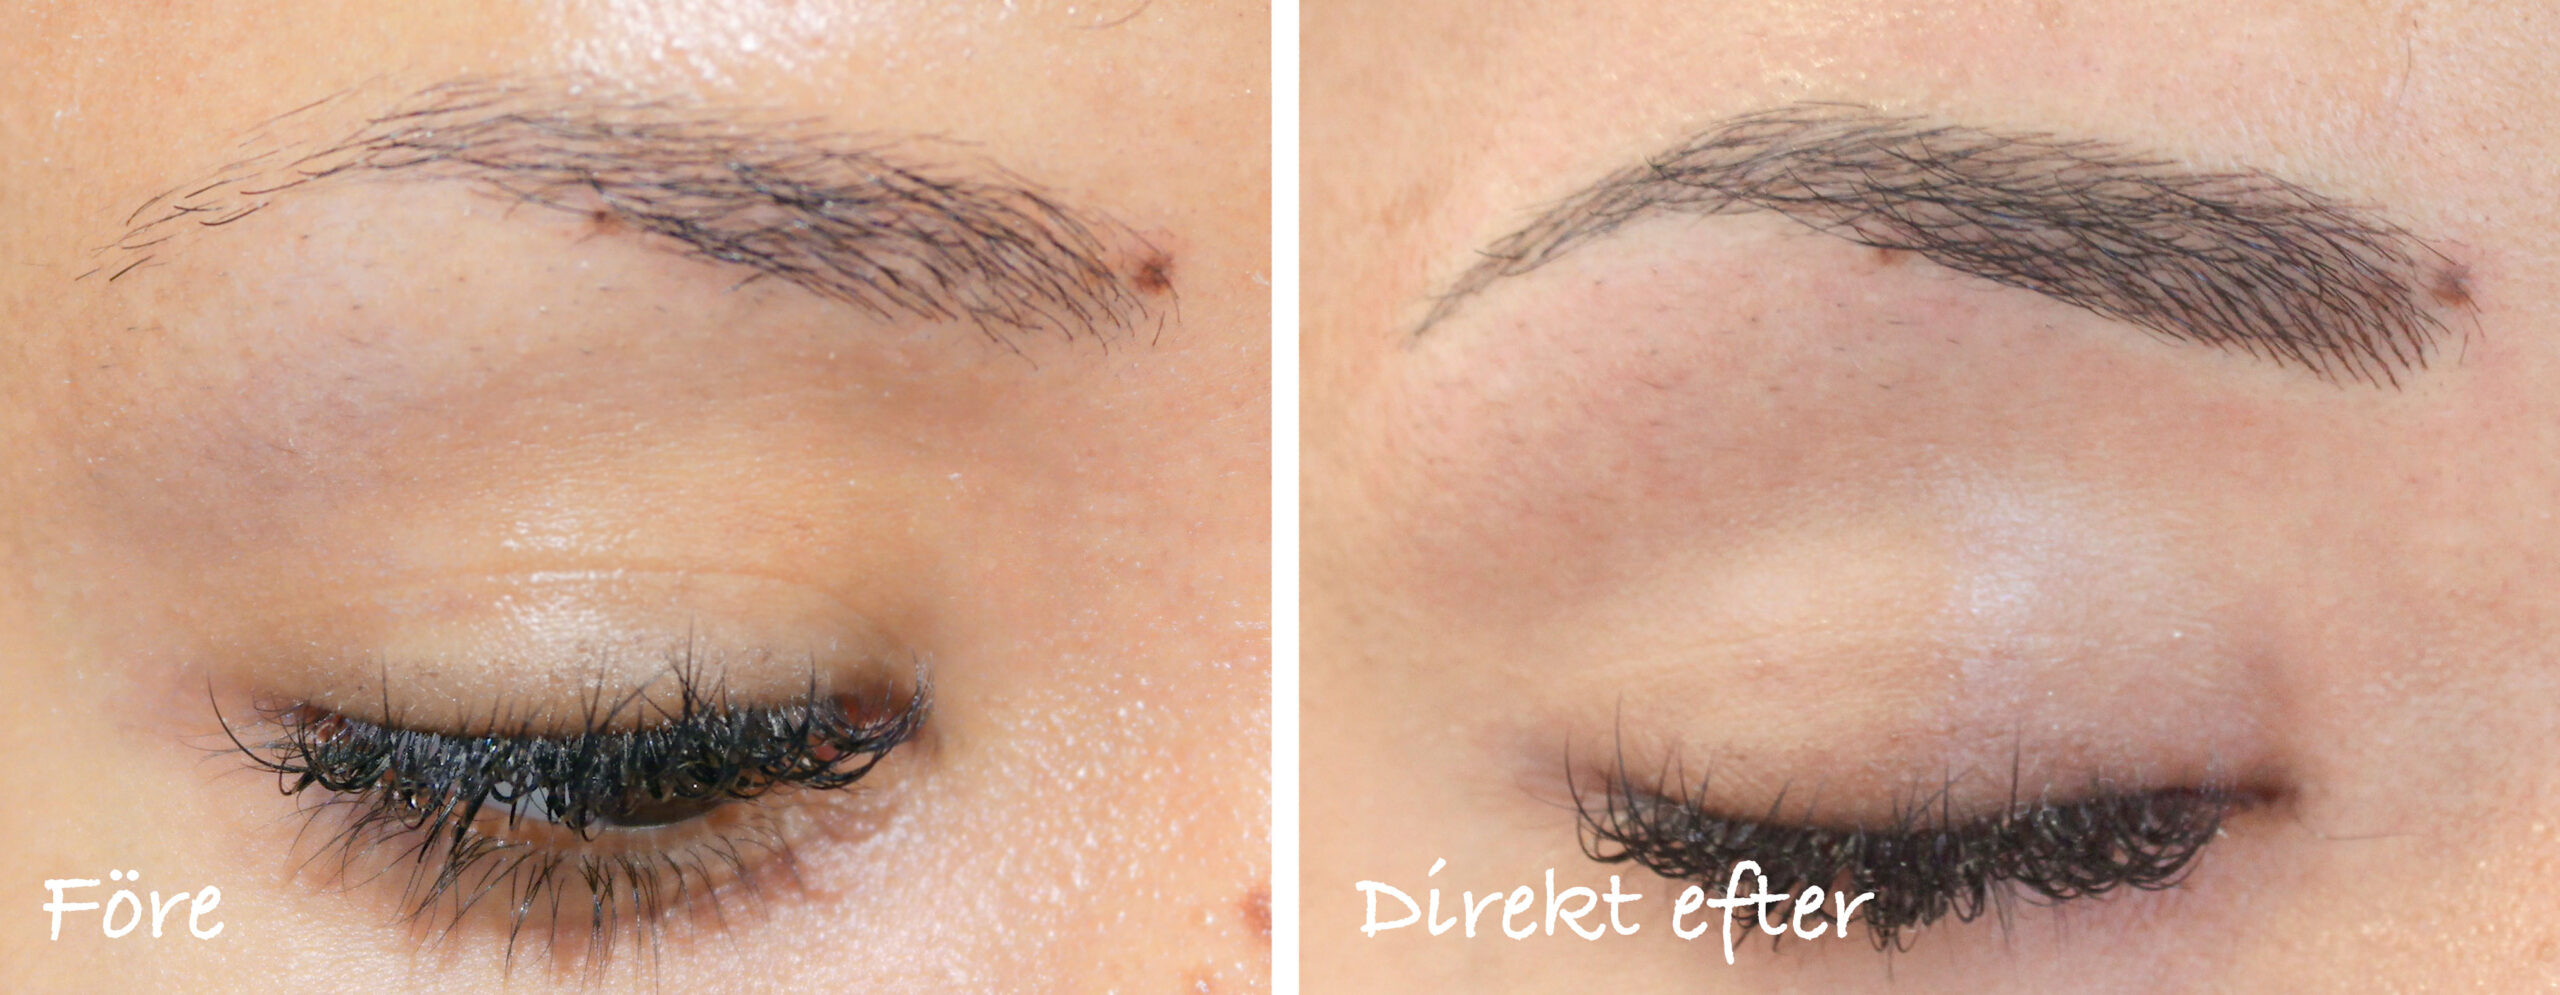 before-after-eyebrow tattoo-brunette